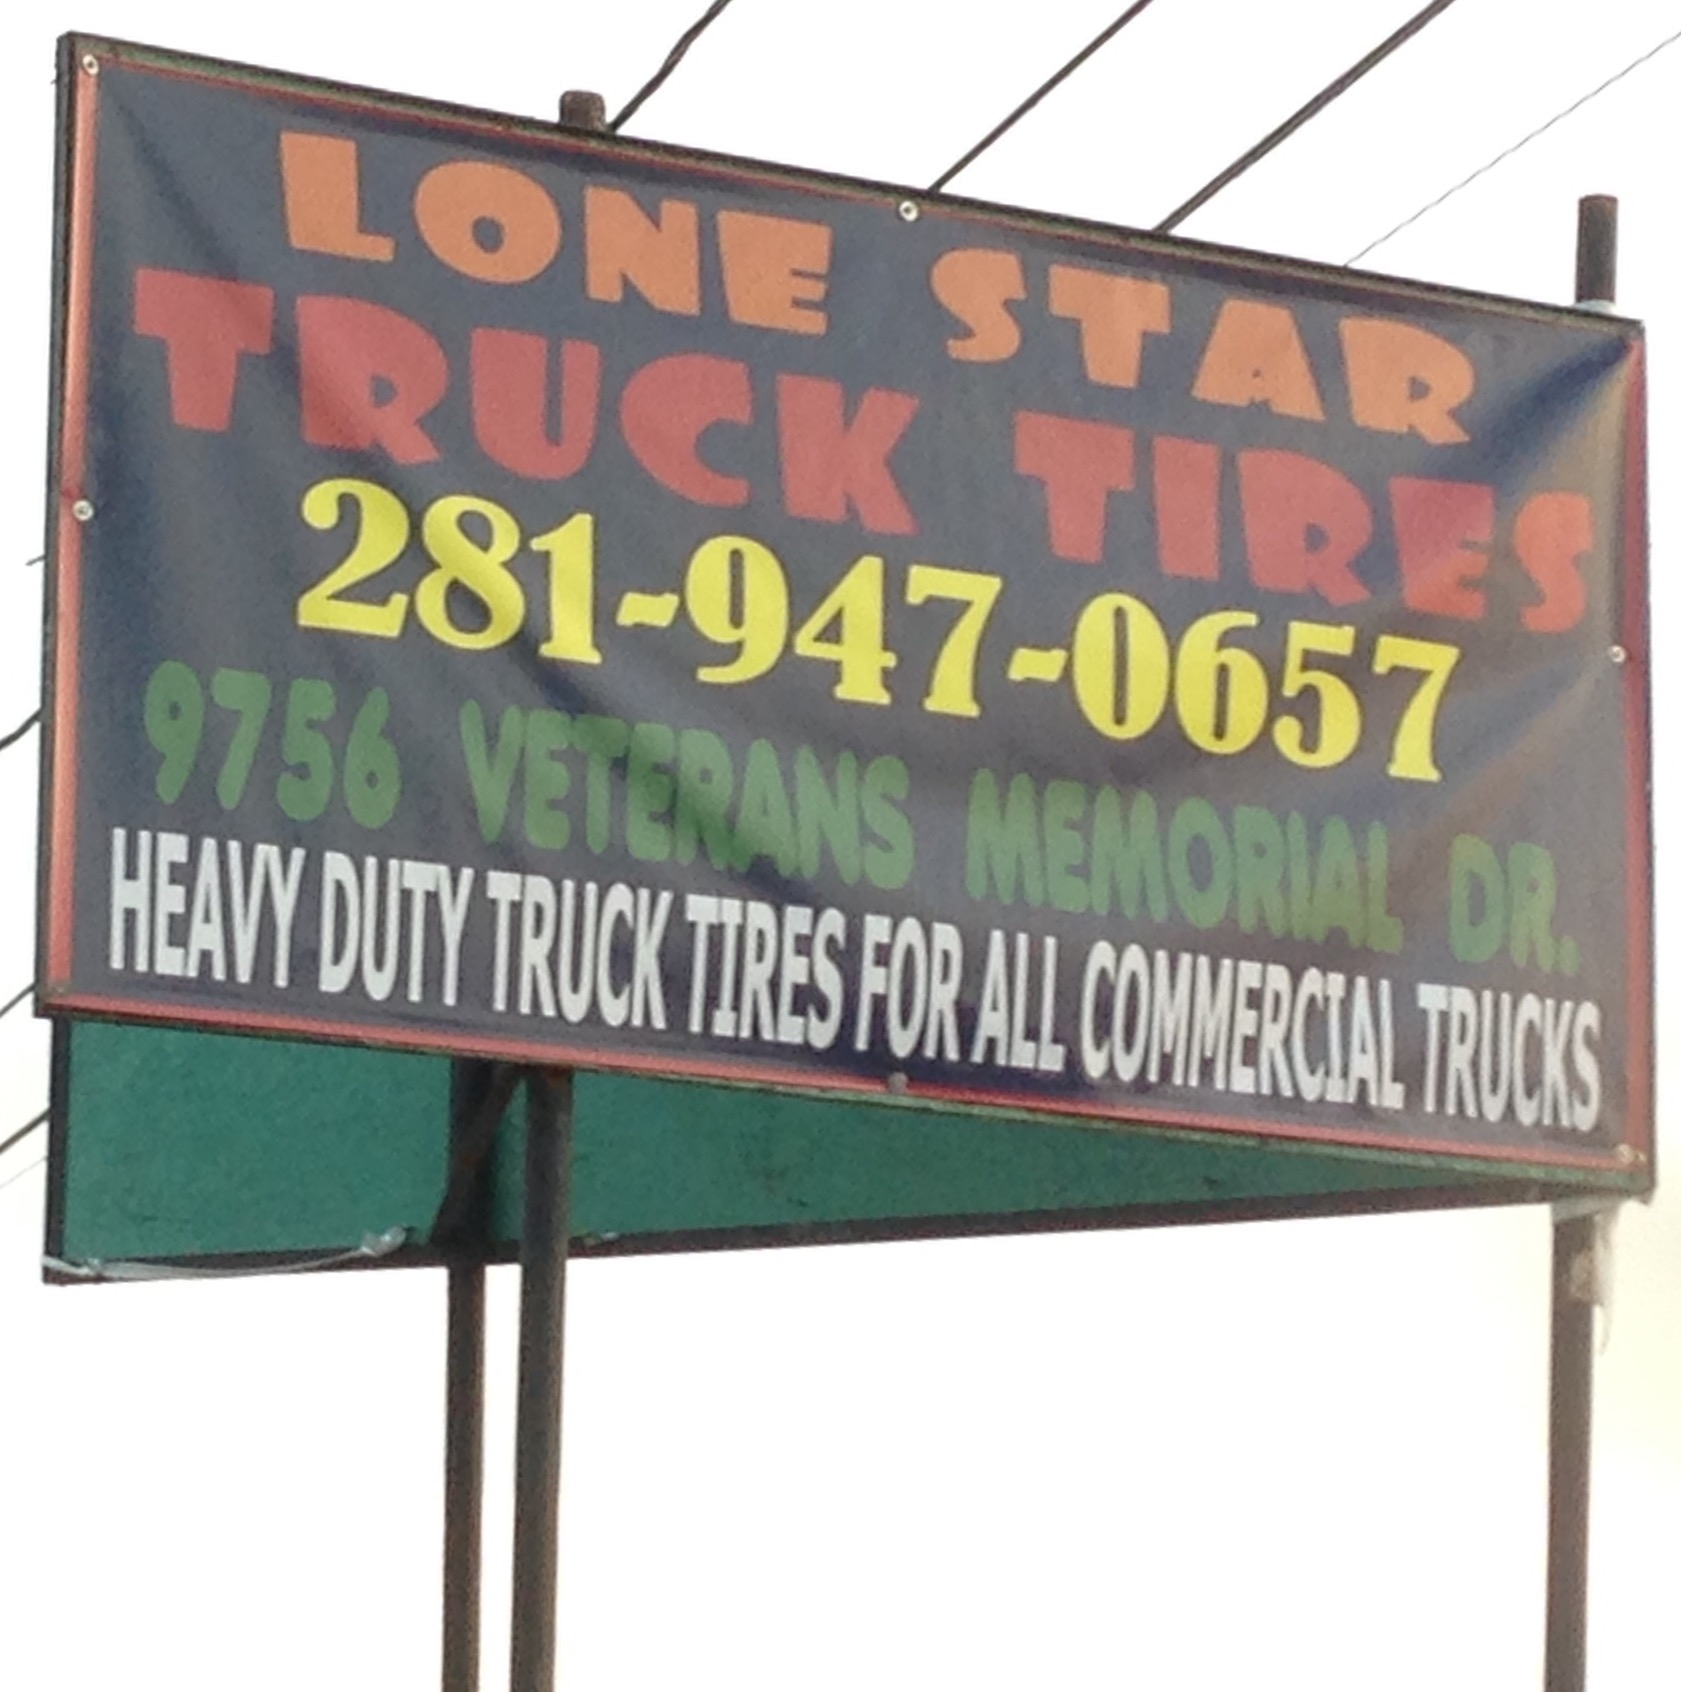 Find Truck Repairing Amp Service In Houston Localdatabase Com